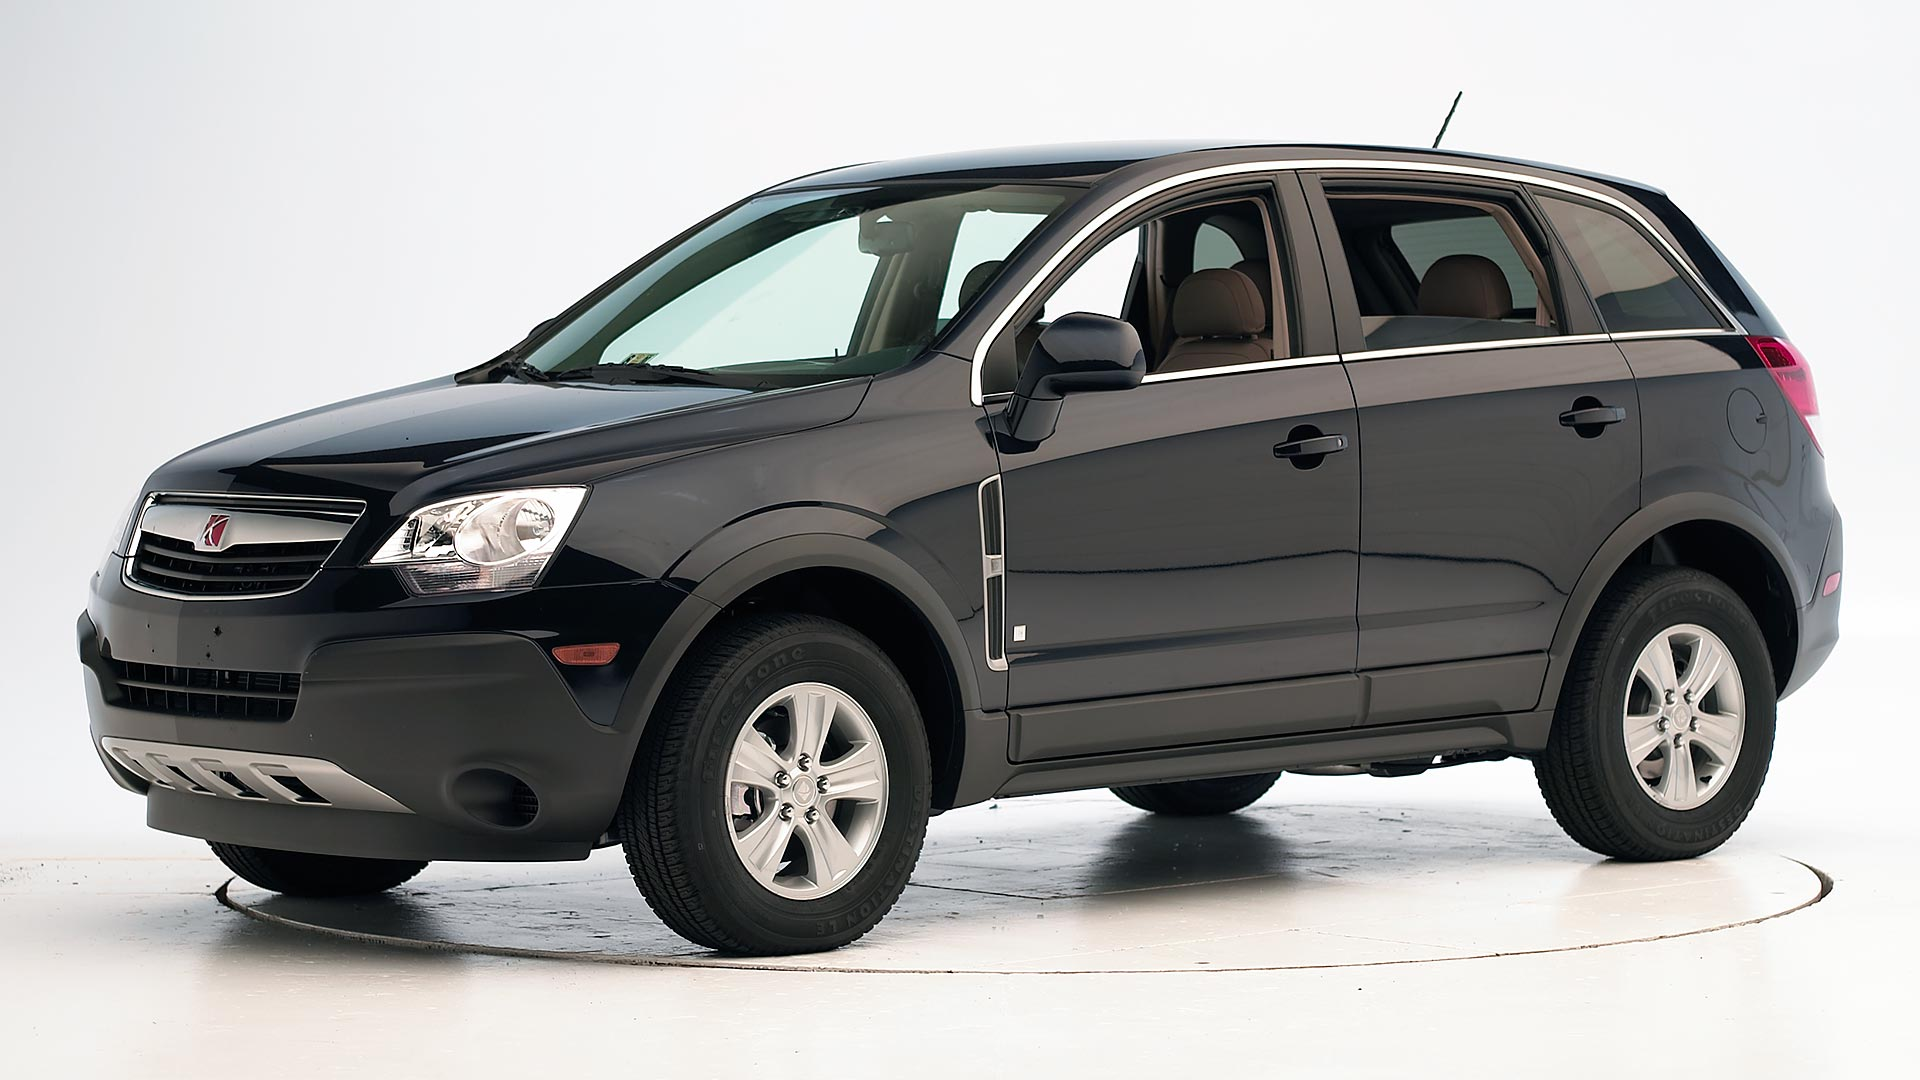 2008 Saturn VUE 4-door SUV